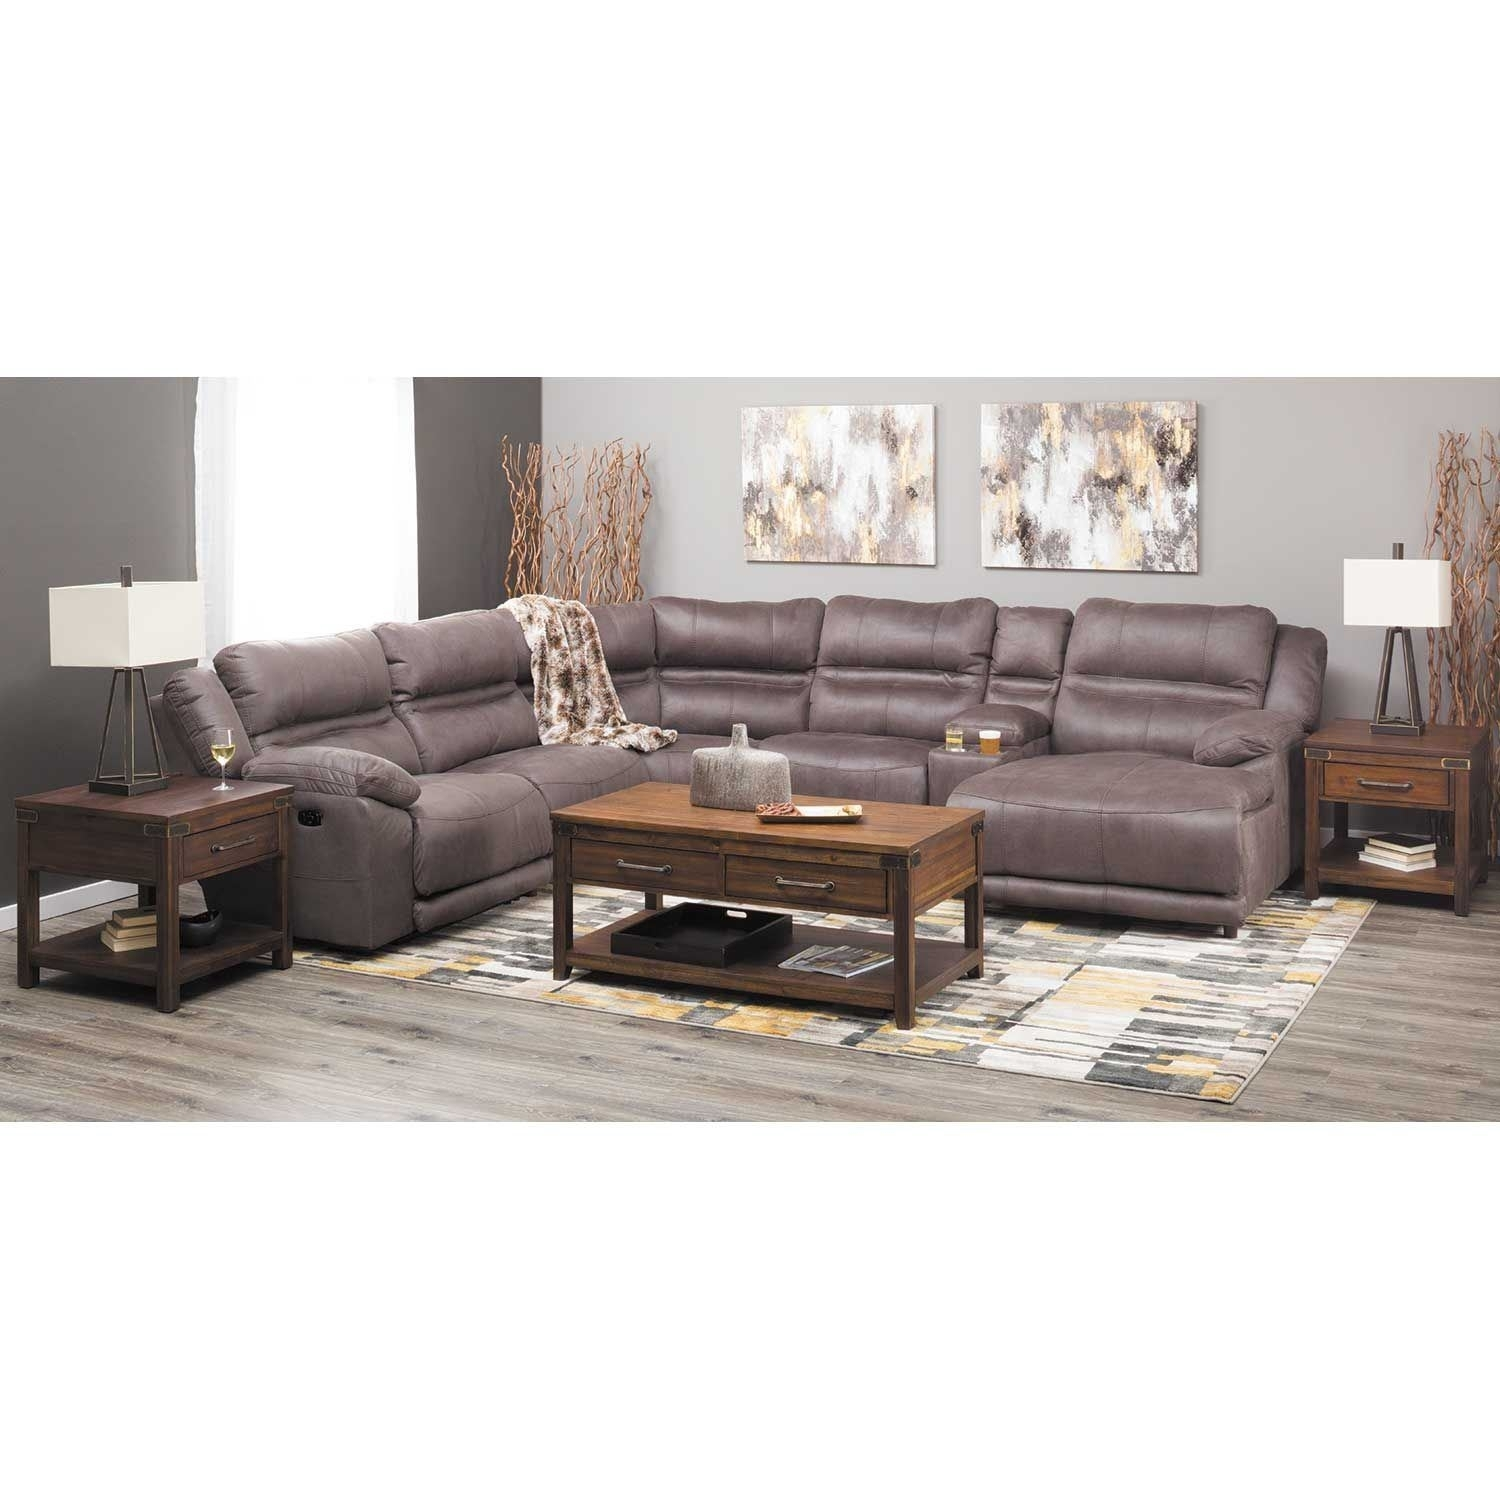 Braxton 6 Piece Power Reclining Sectional With Adjustable Headrest Regarding Jackson 6 Piece Power Reclining Sectionals (View 9 of 25)